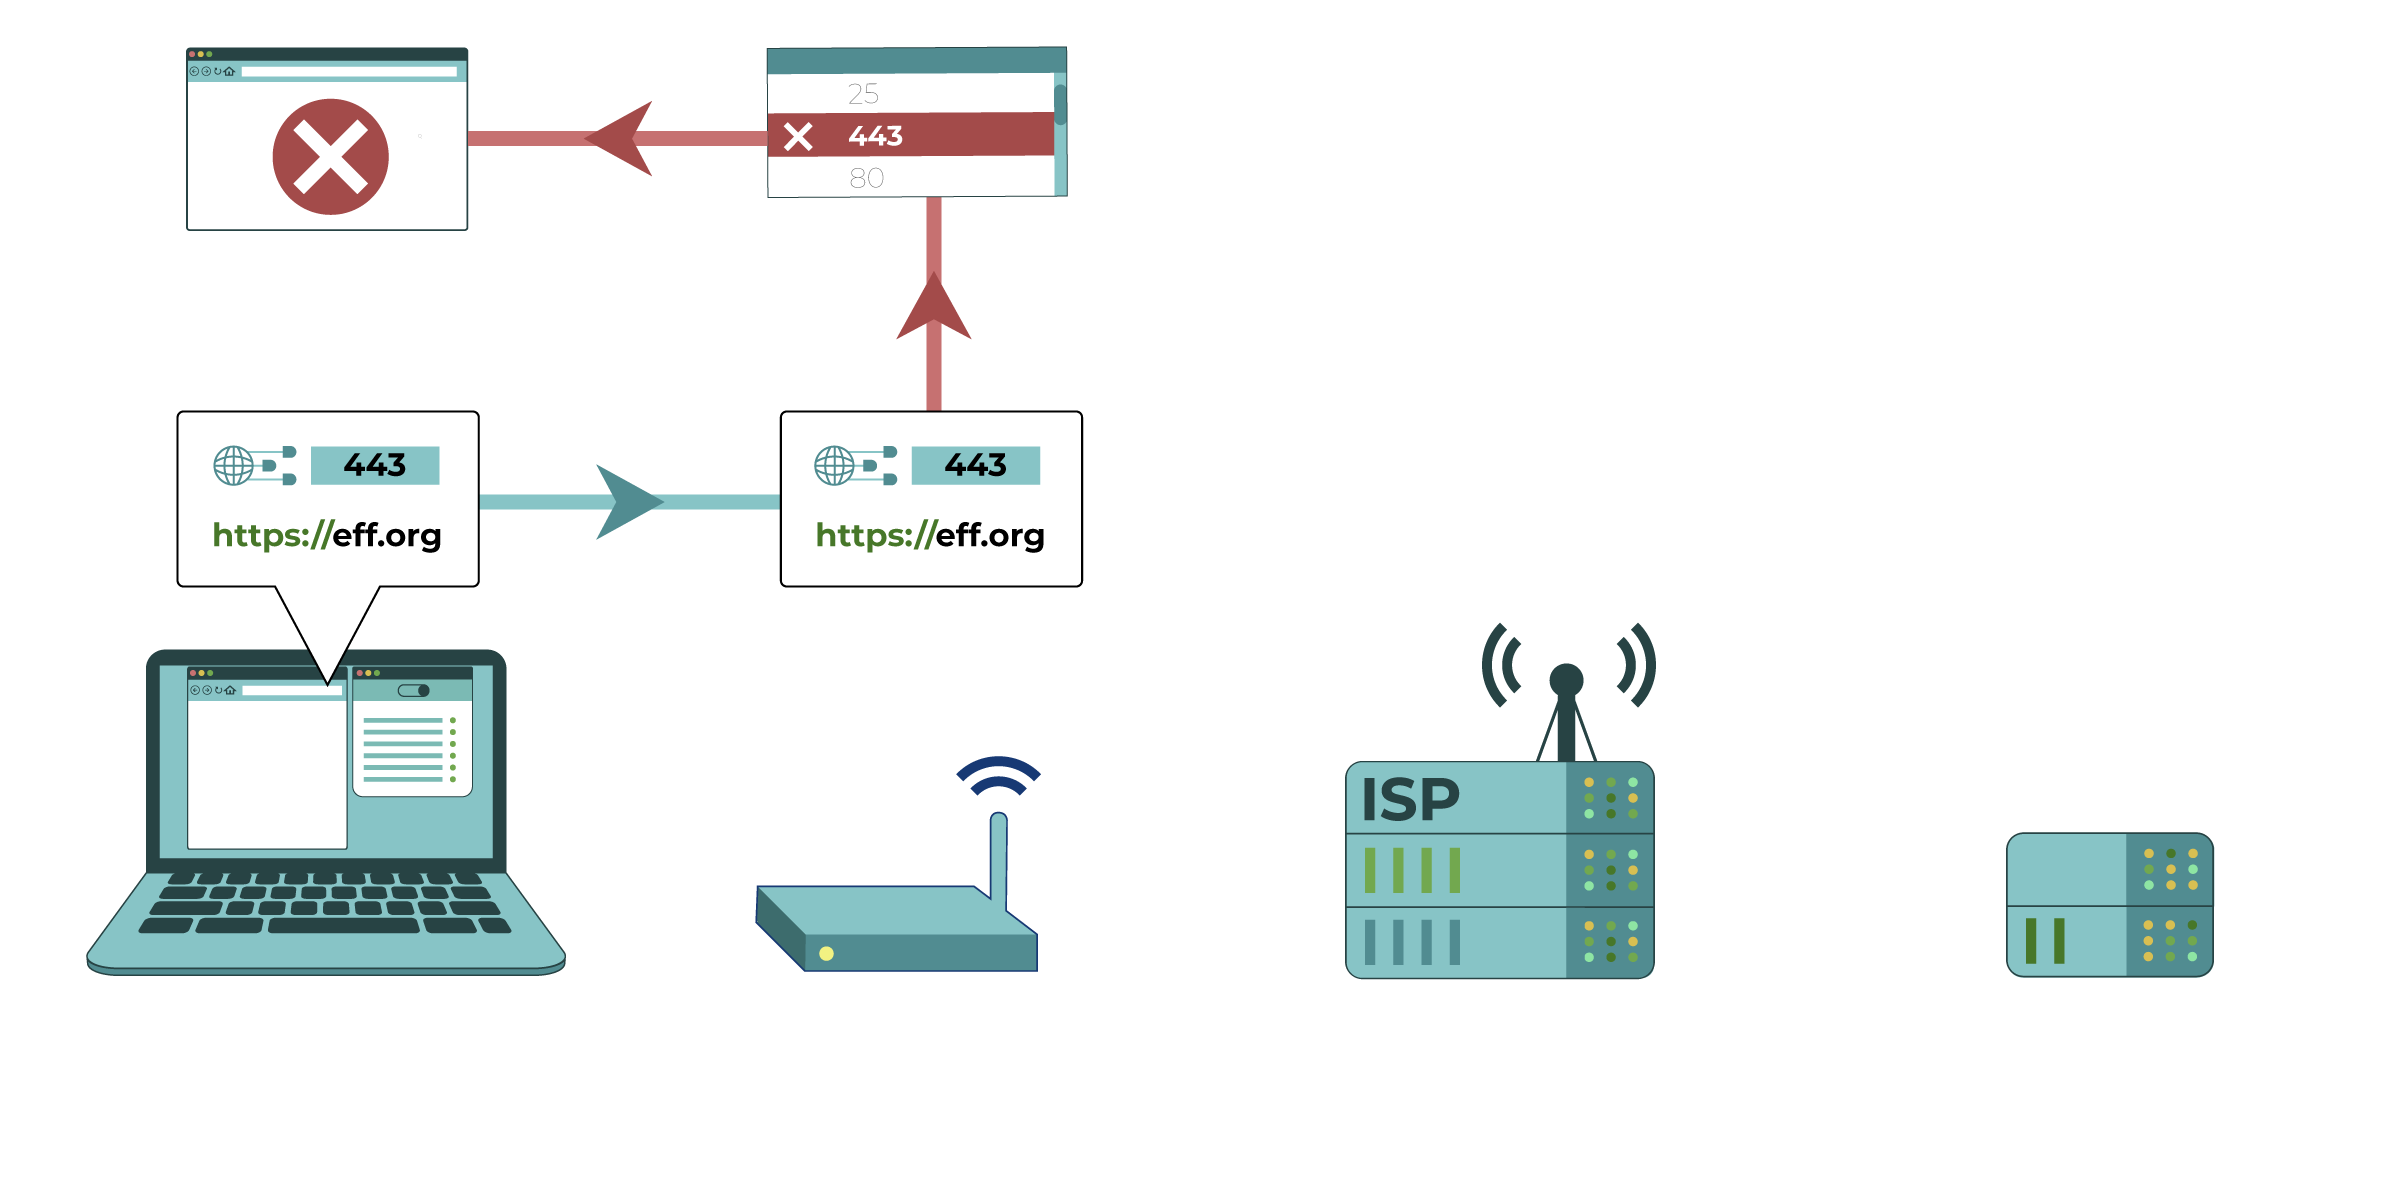 In this diagram, the router recognizes a computer attempting to connect to an HTTPS site, which uses Port 443. Port 443 is on this router's list of blocked protocols.